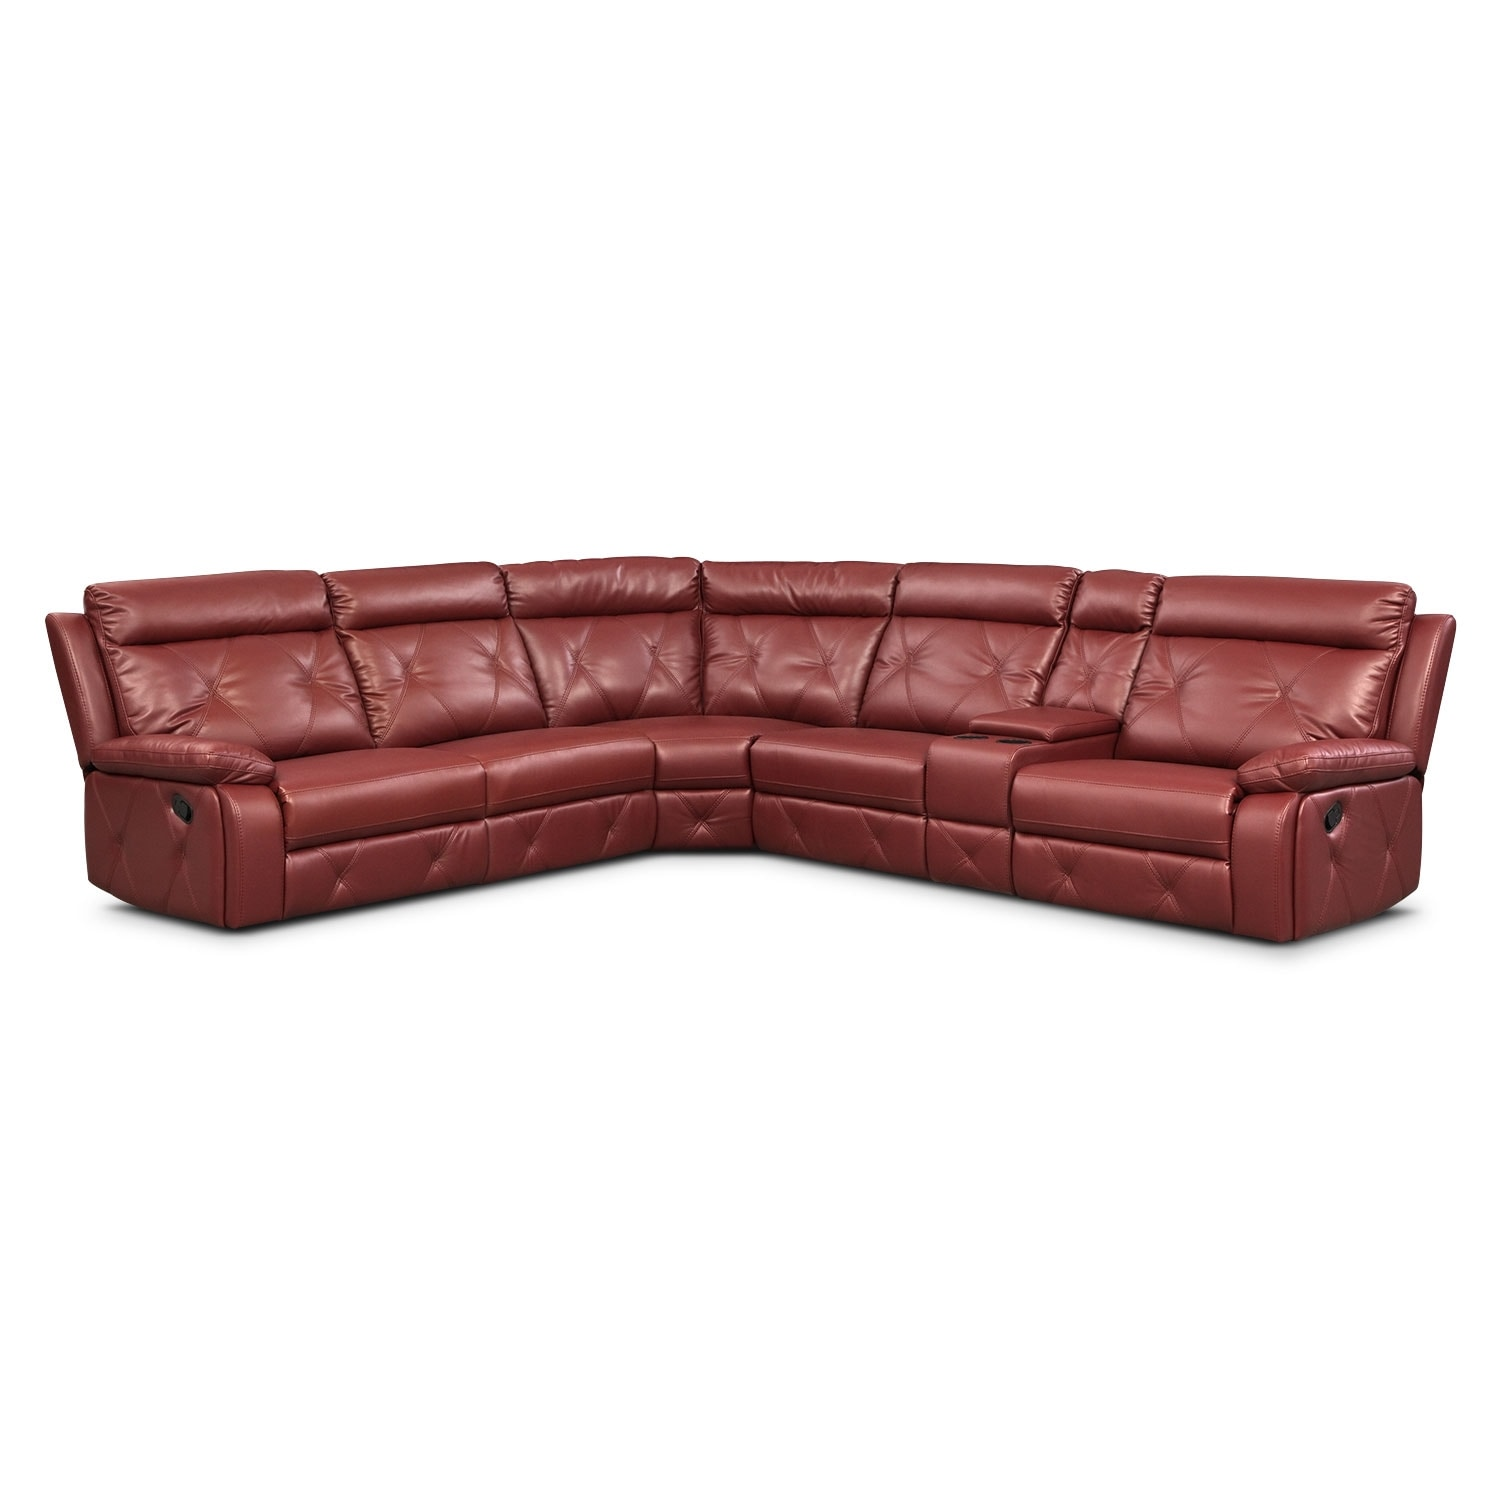 Living Room Furniture - Dante Red 6 Pc. Reclining Sectional w/ 3 Reclining Seats